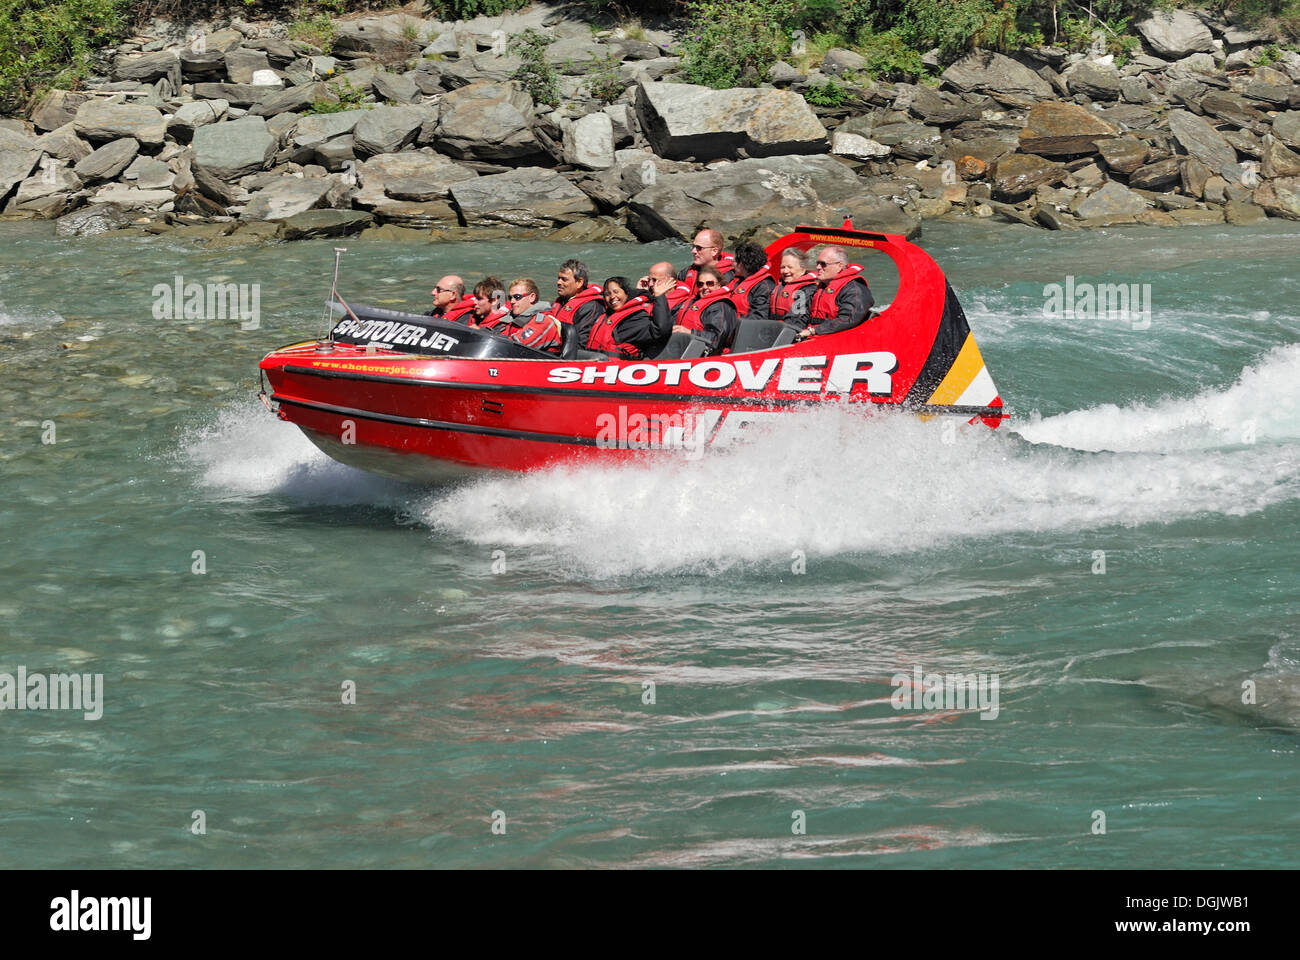 Jet boat, speed boat on the Shotover River, Queenstown, South Island, New Zealand - Stock Image